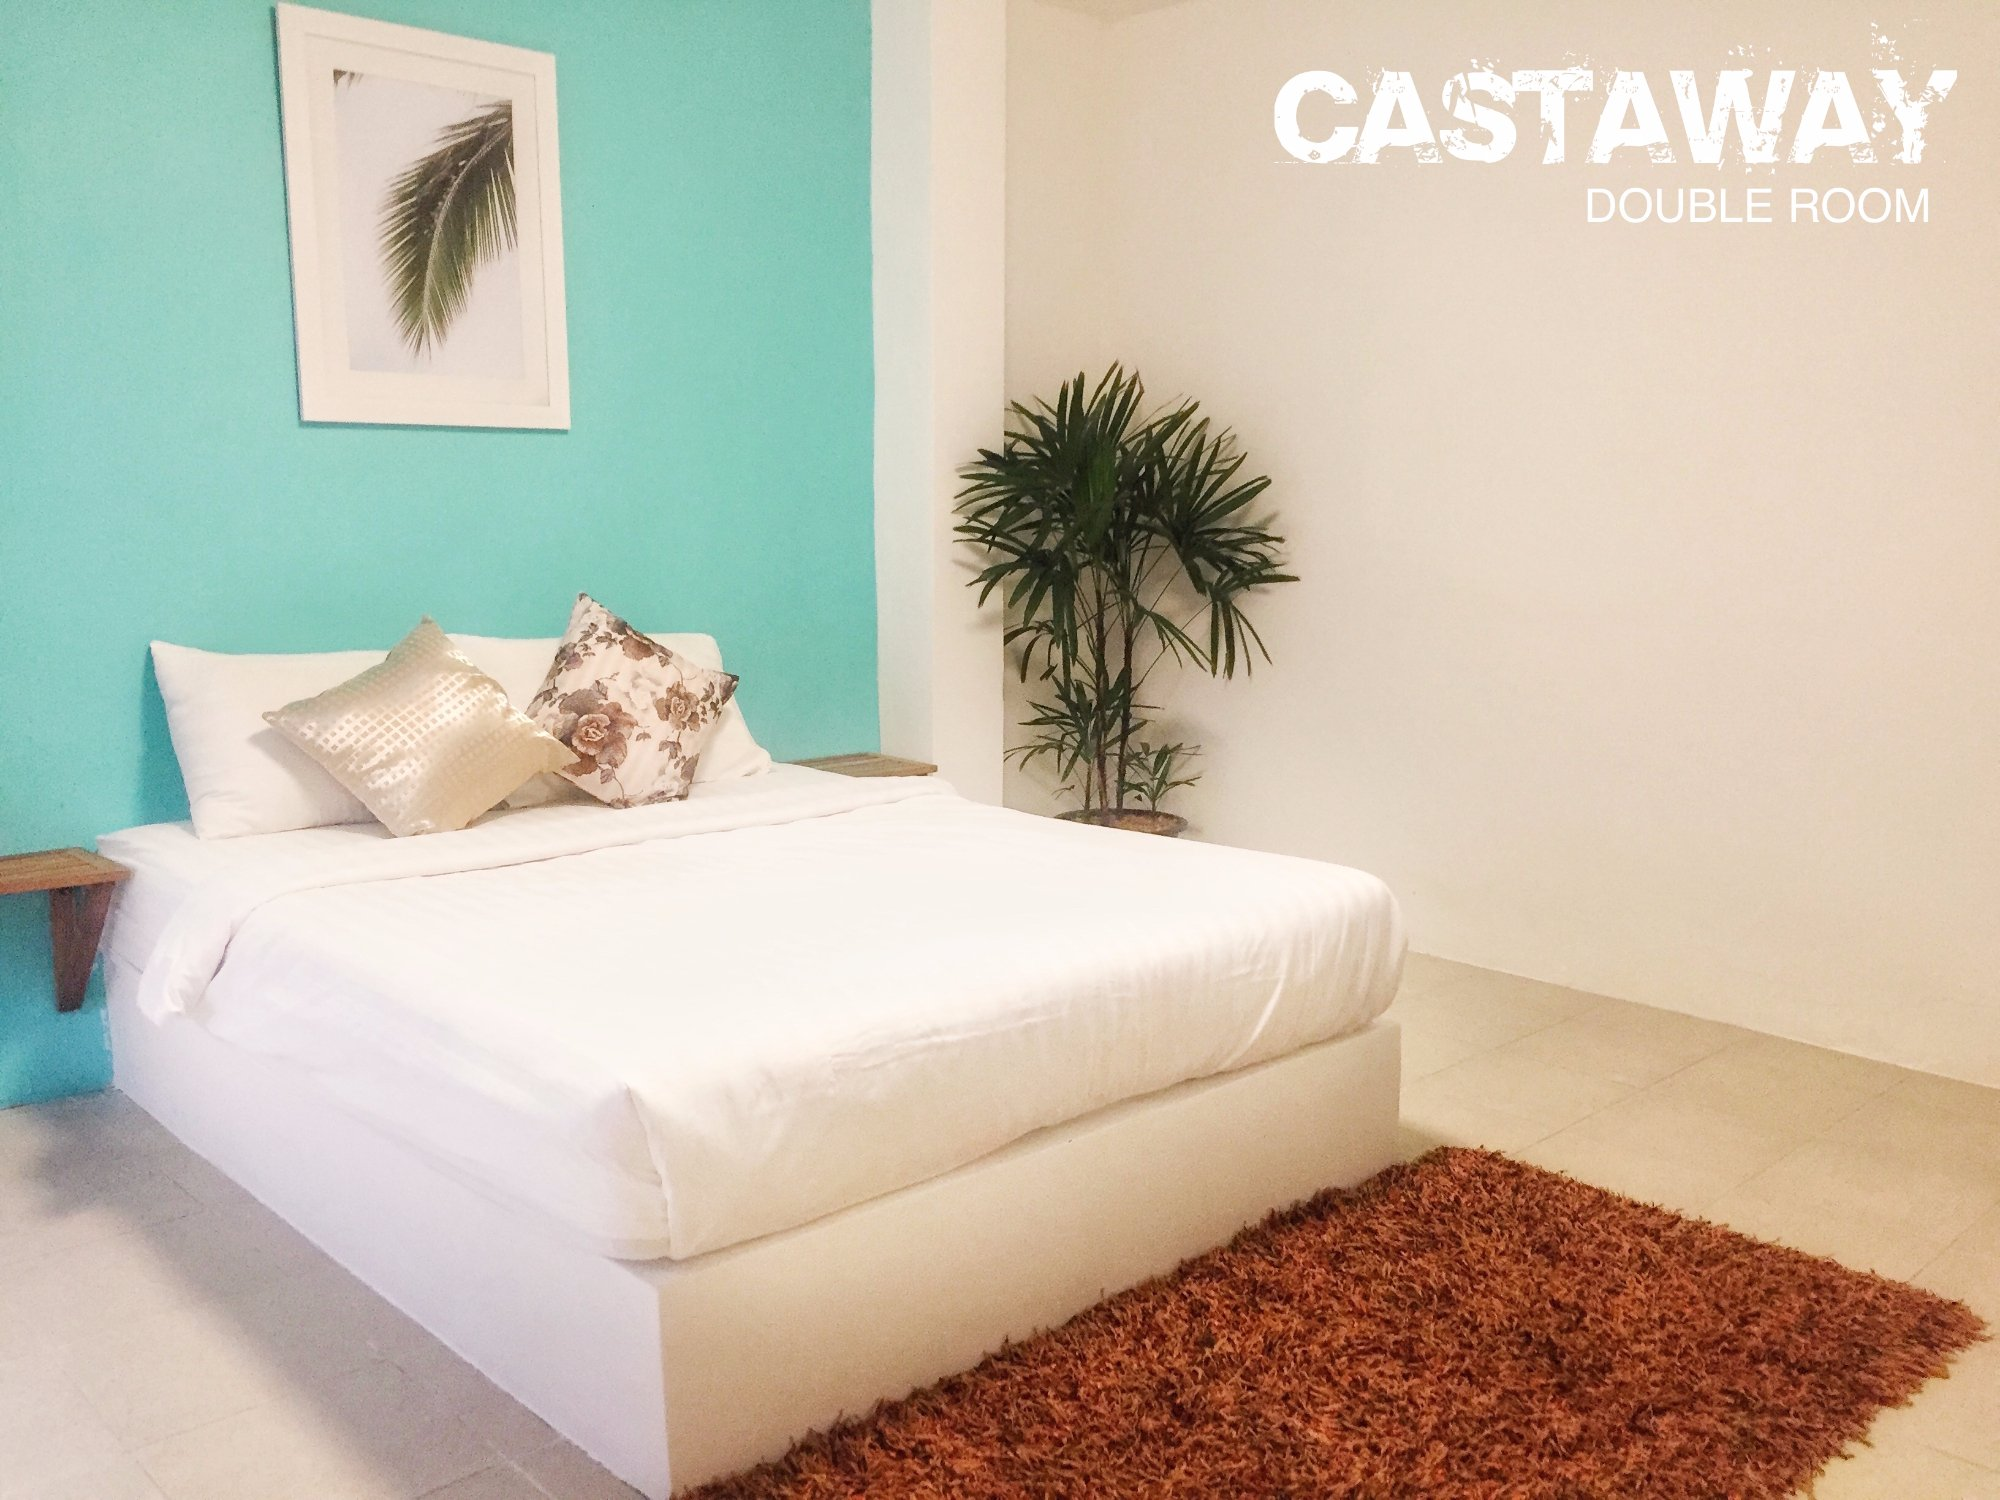 Castaway Guesthouse Hostel and Bar